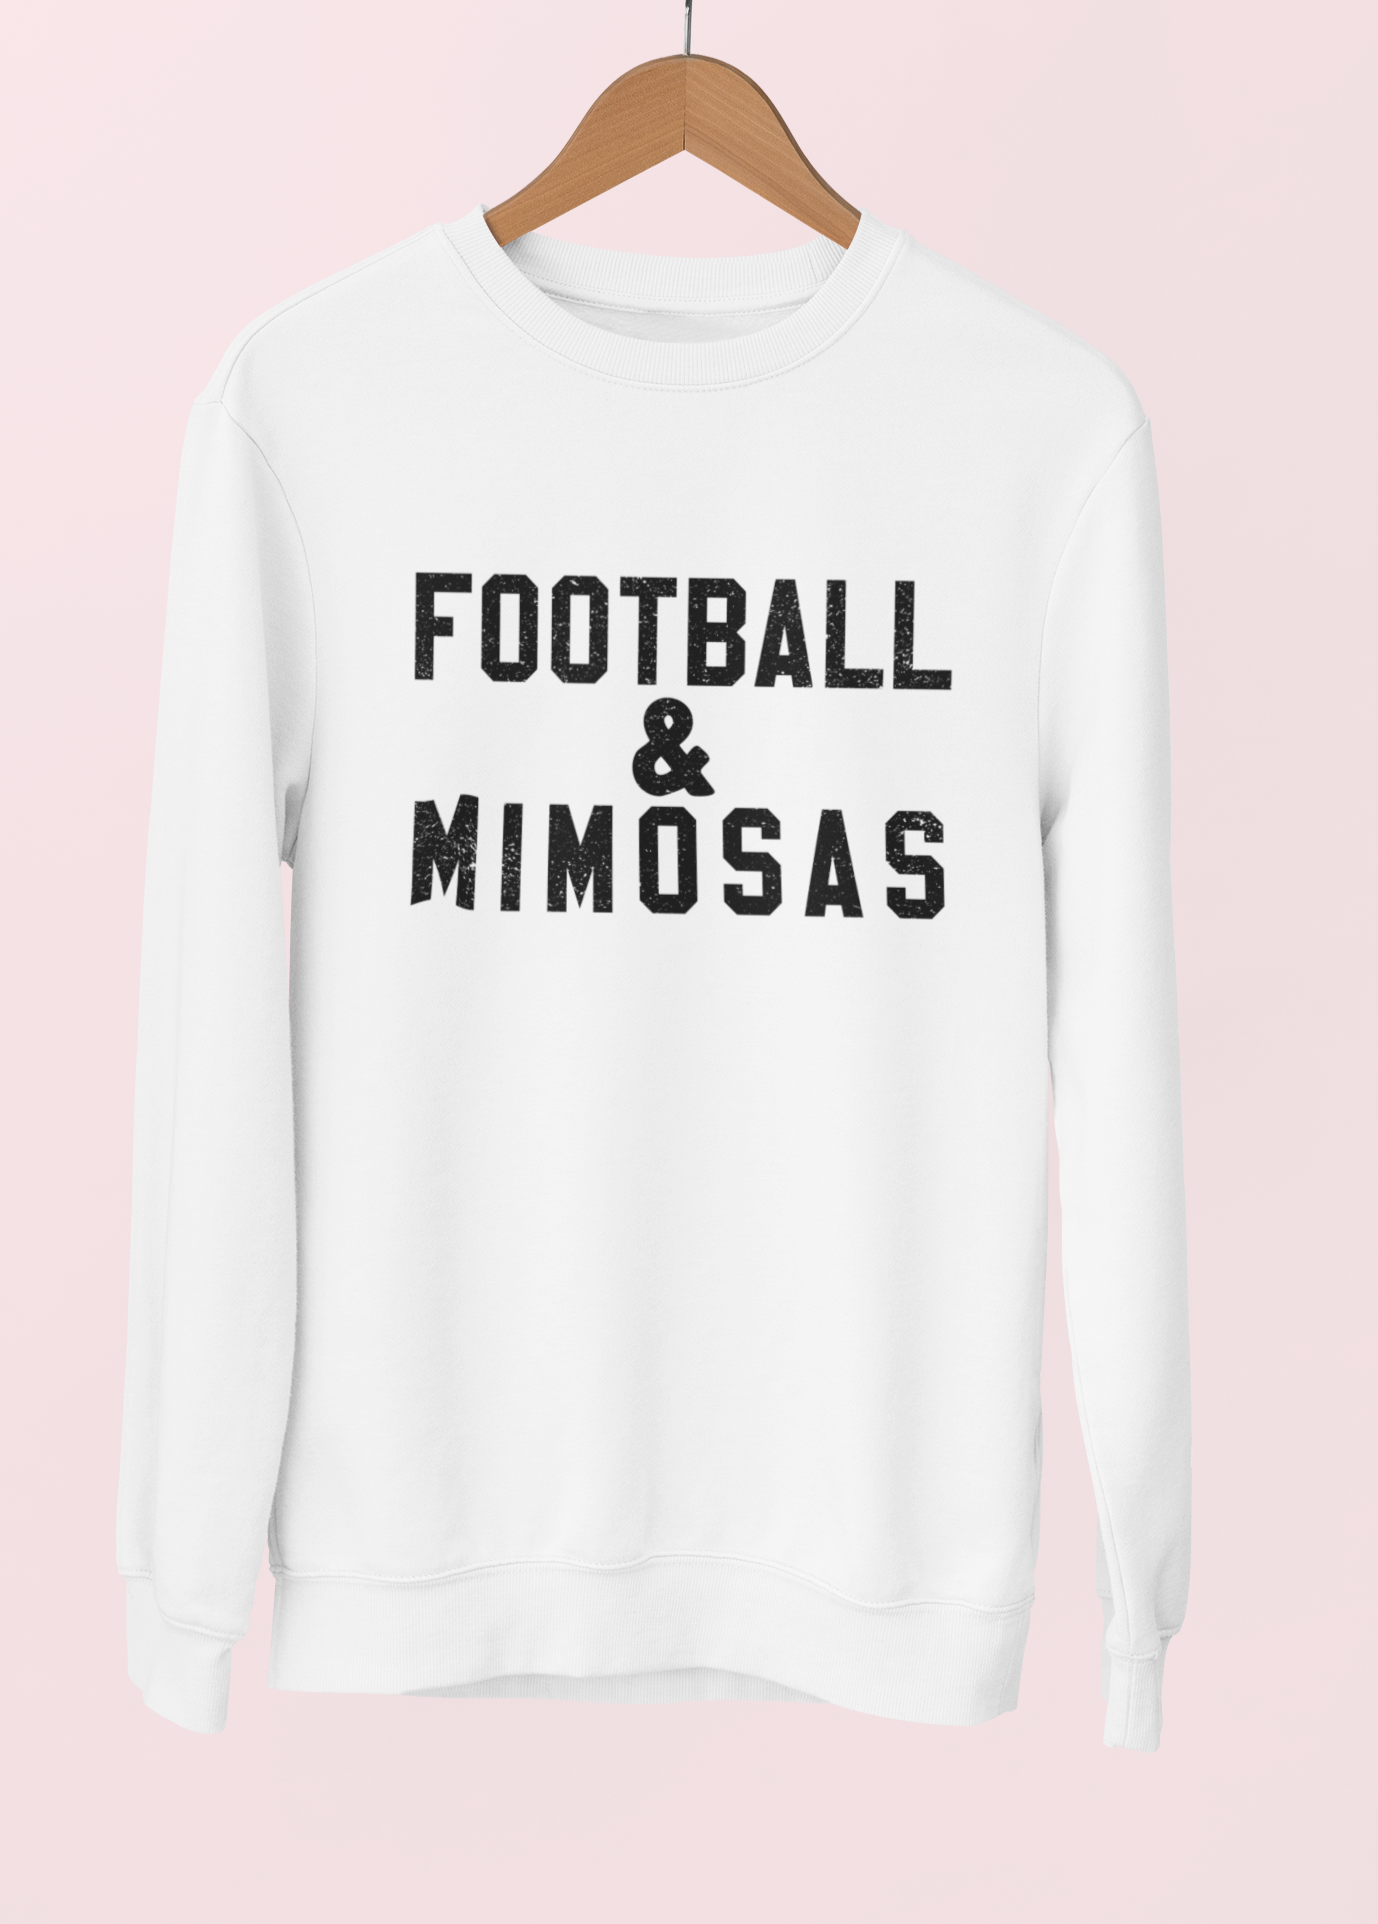 White sweatshirt saying football and mimosas - HighCiti